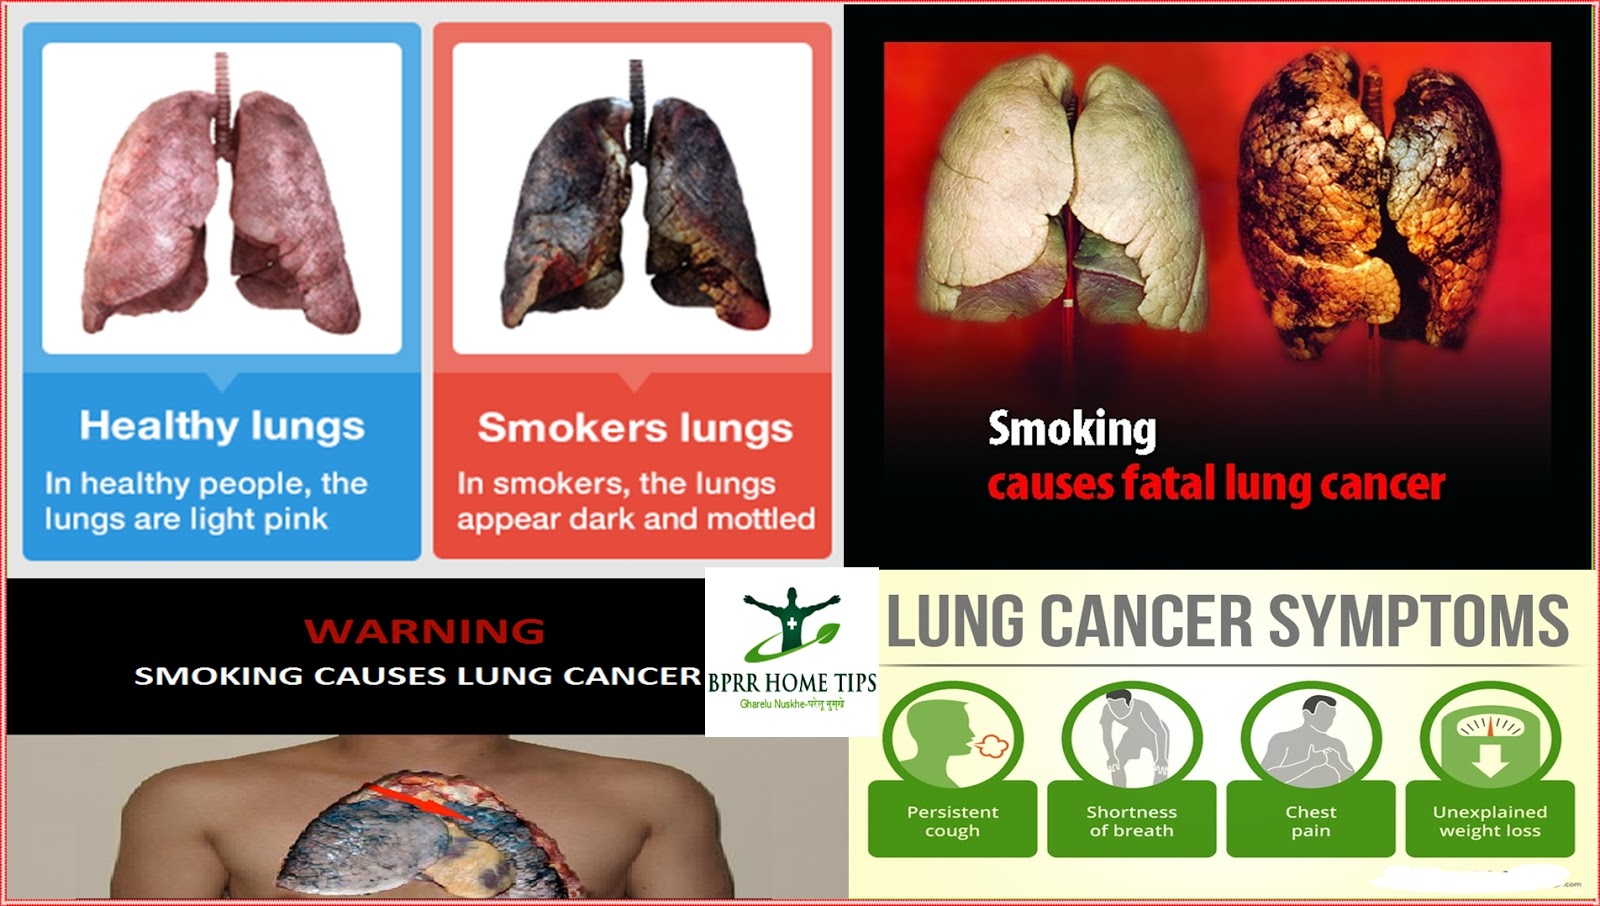 lung cancer in hindi lung cancer 234723752347233723642375 23252366 23252376230623602352 lung cancer in hindi lung cancer stages